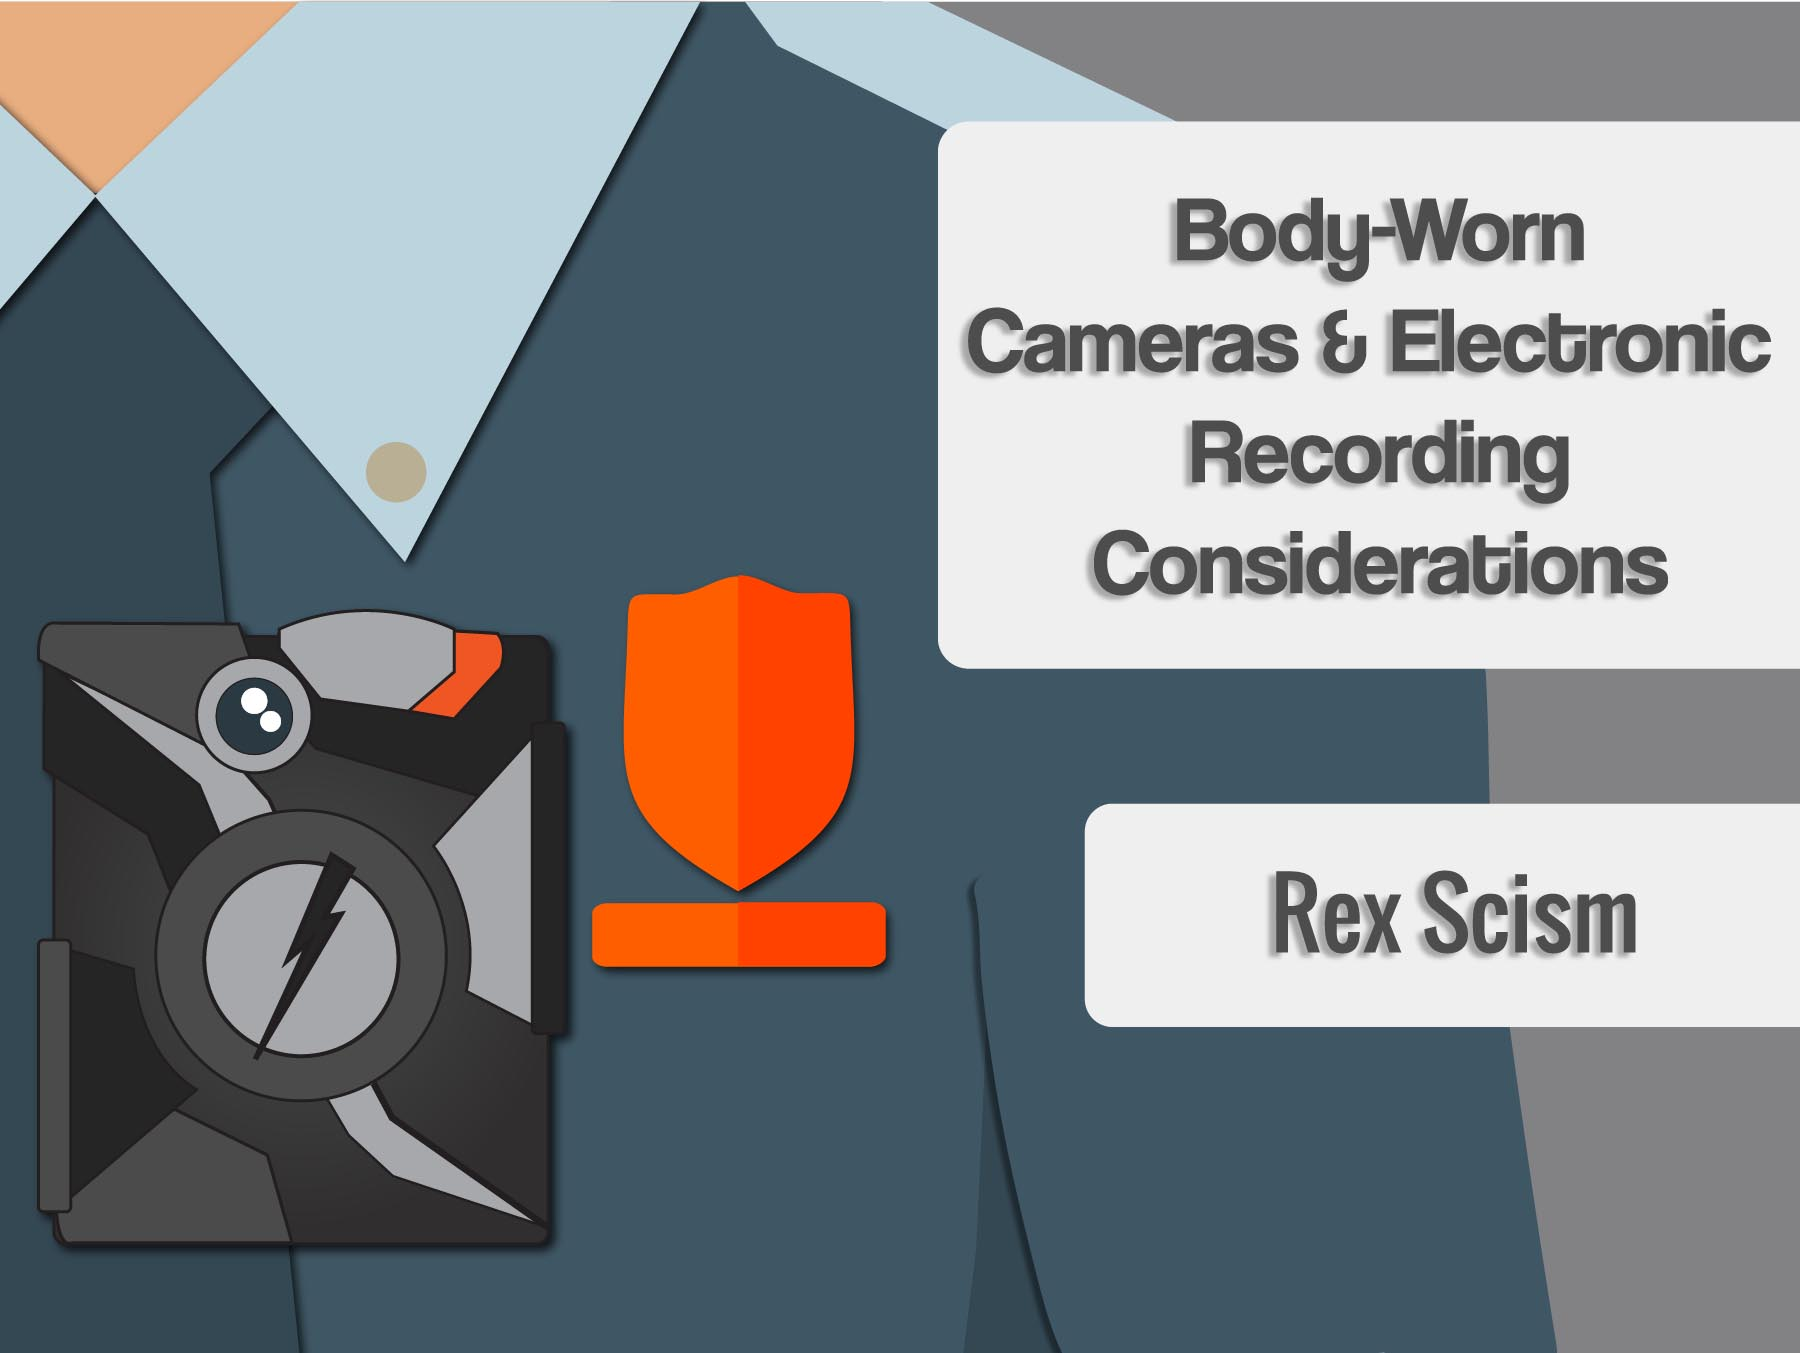 Body-Worn Cameras & Electronic Recording Considerations